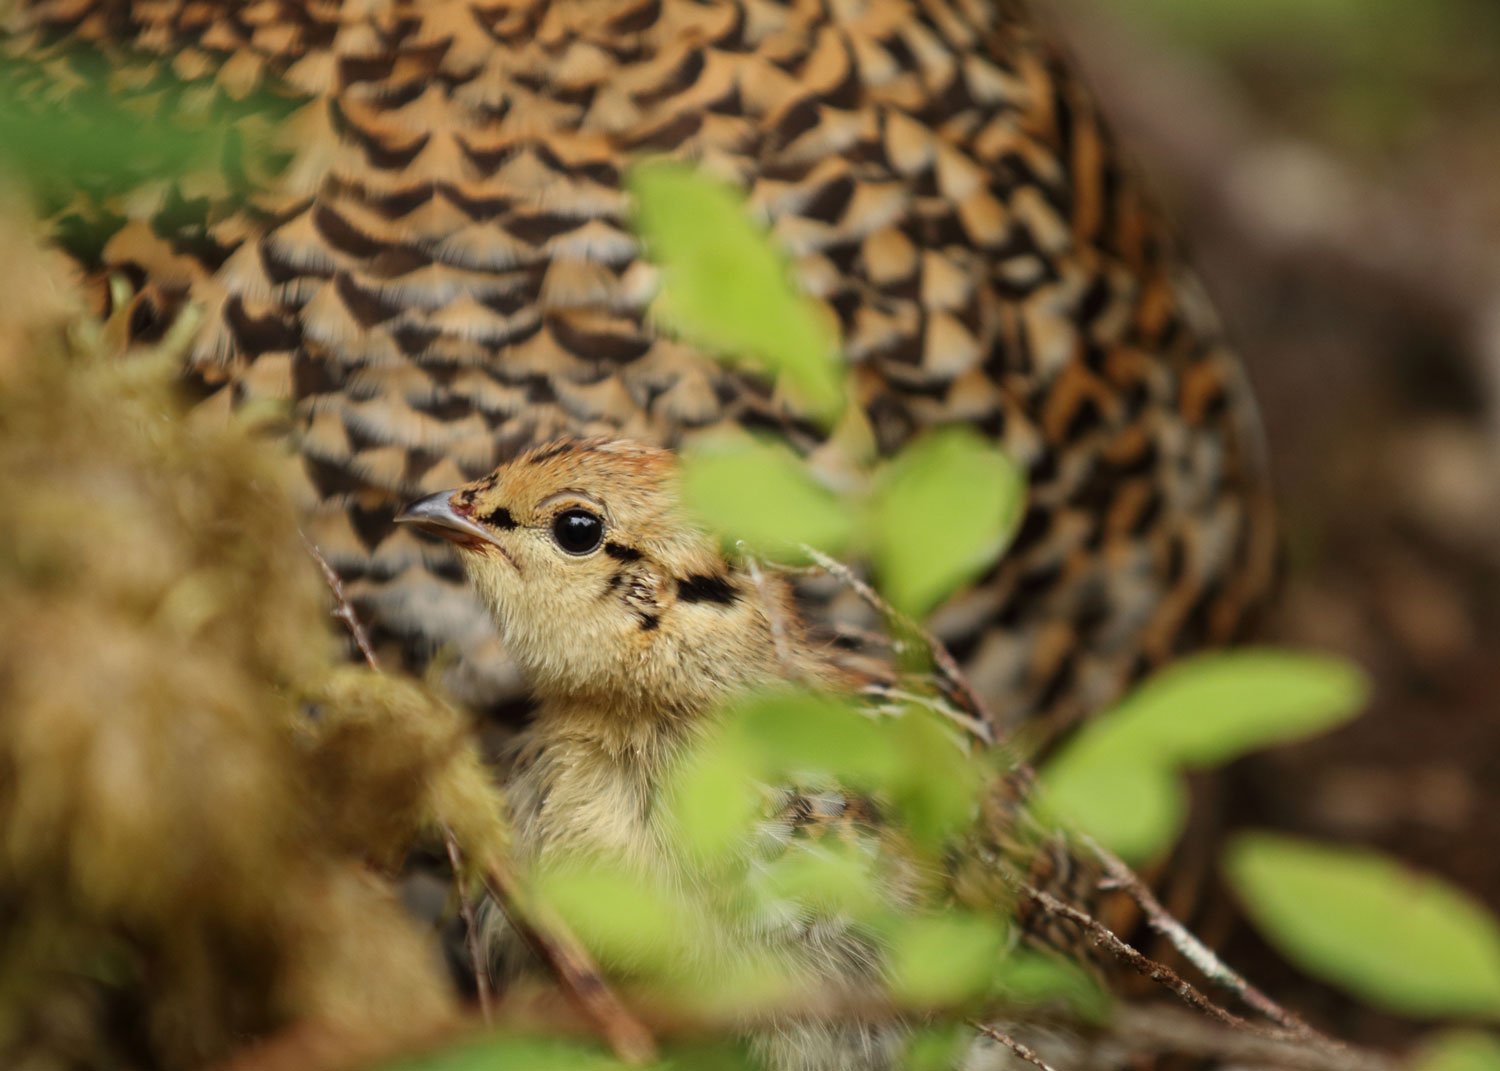 Spruce grouse chick in front of mom hen Southeast Alaska